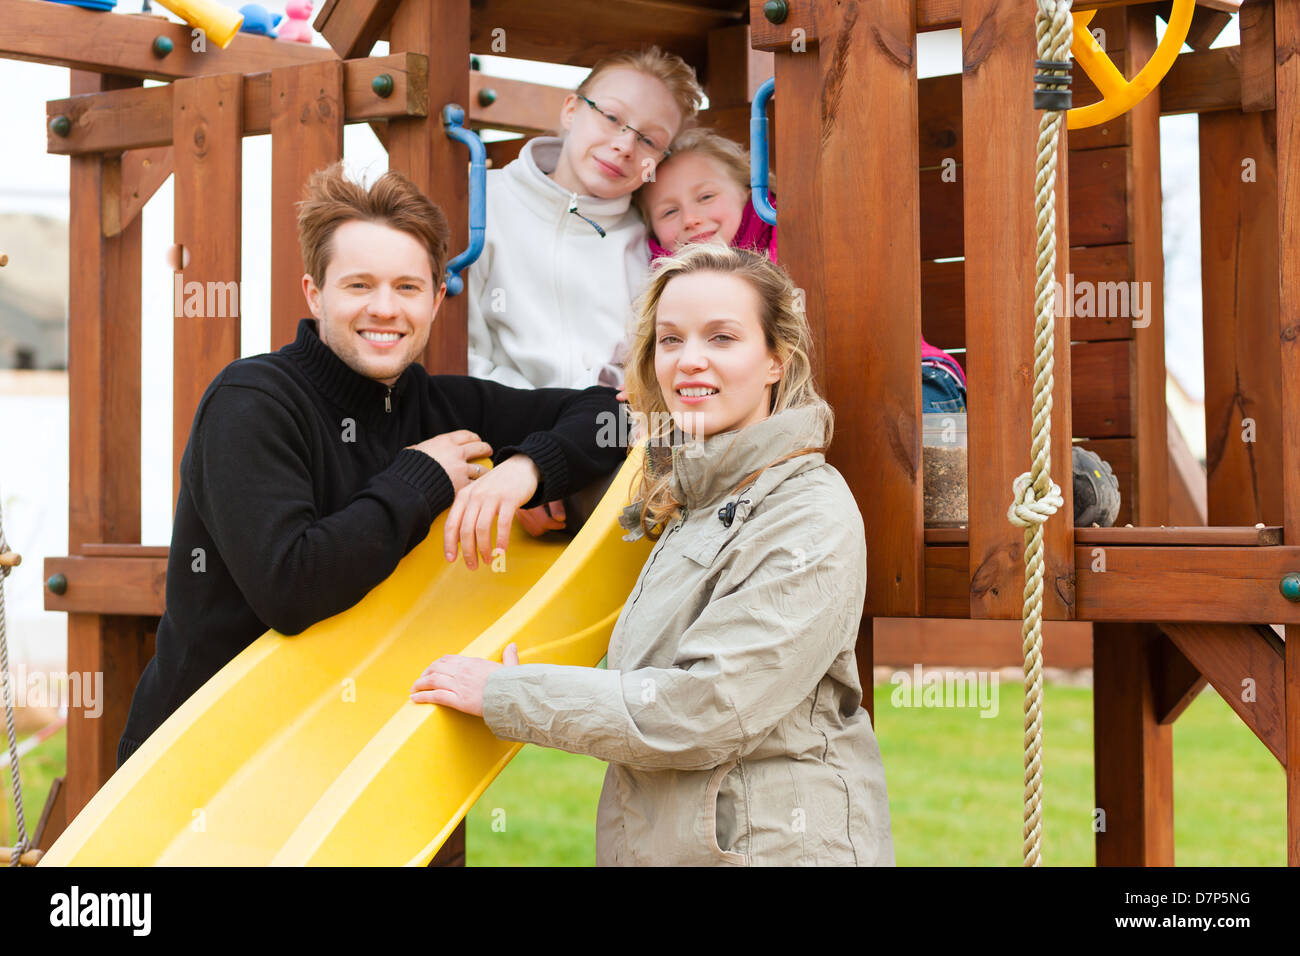 Young Family on the playground, the children sitting on a climbing frame, mother and father standing in front Stock Photo